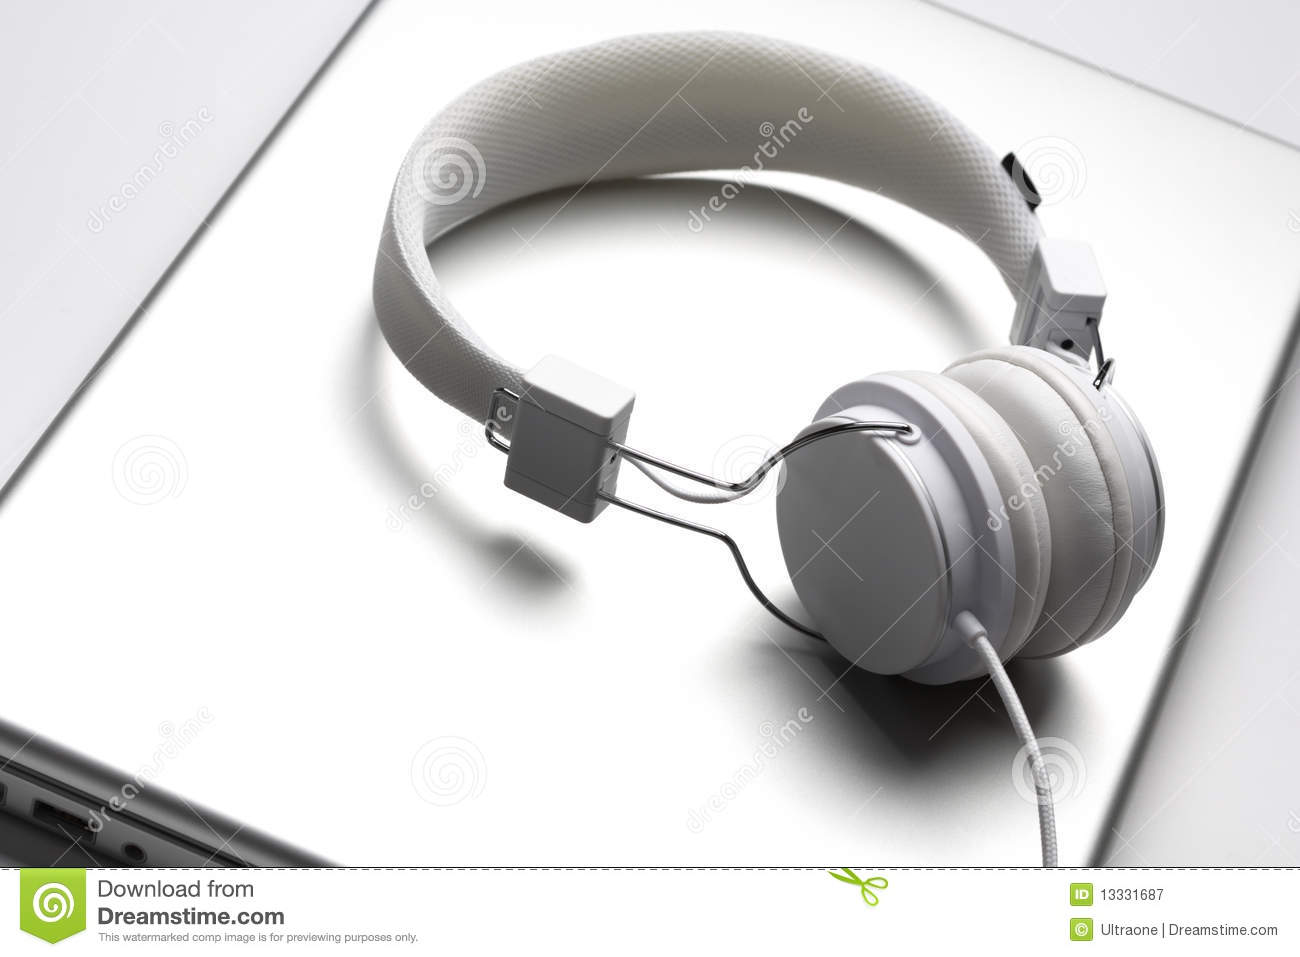 Headfones laptopu biel